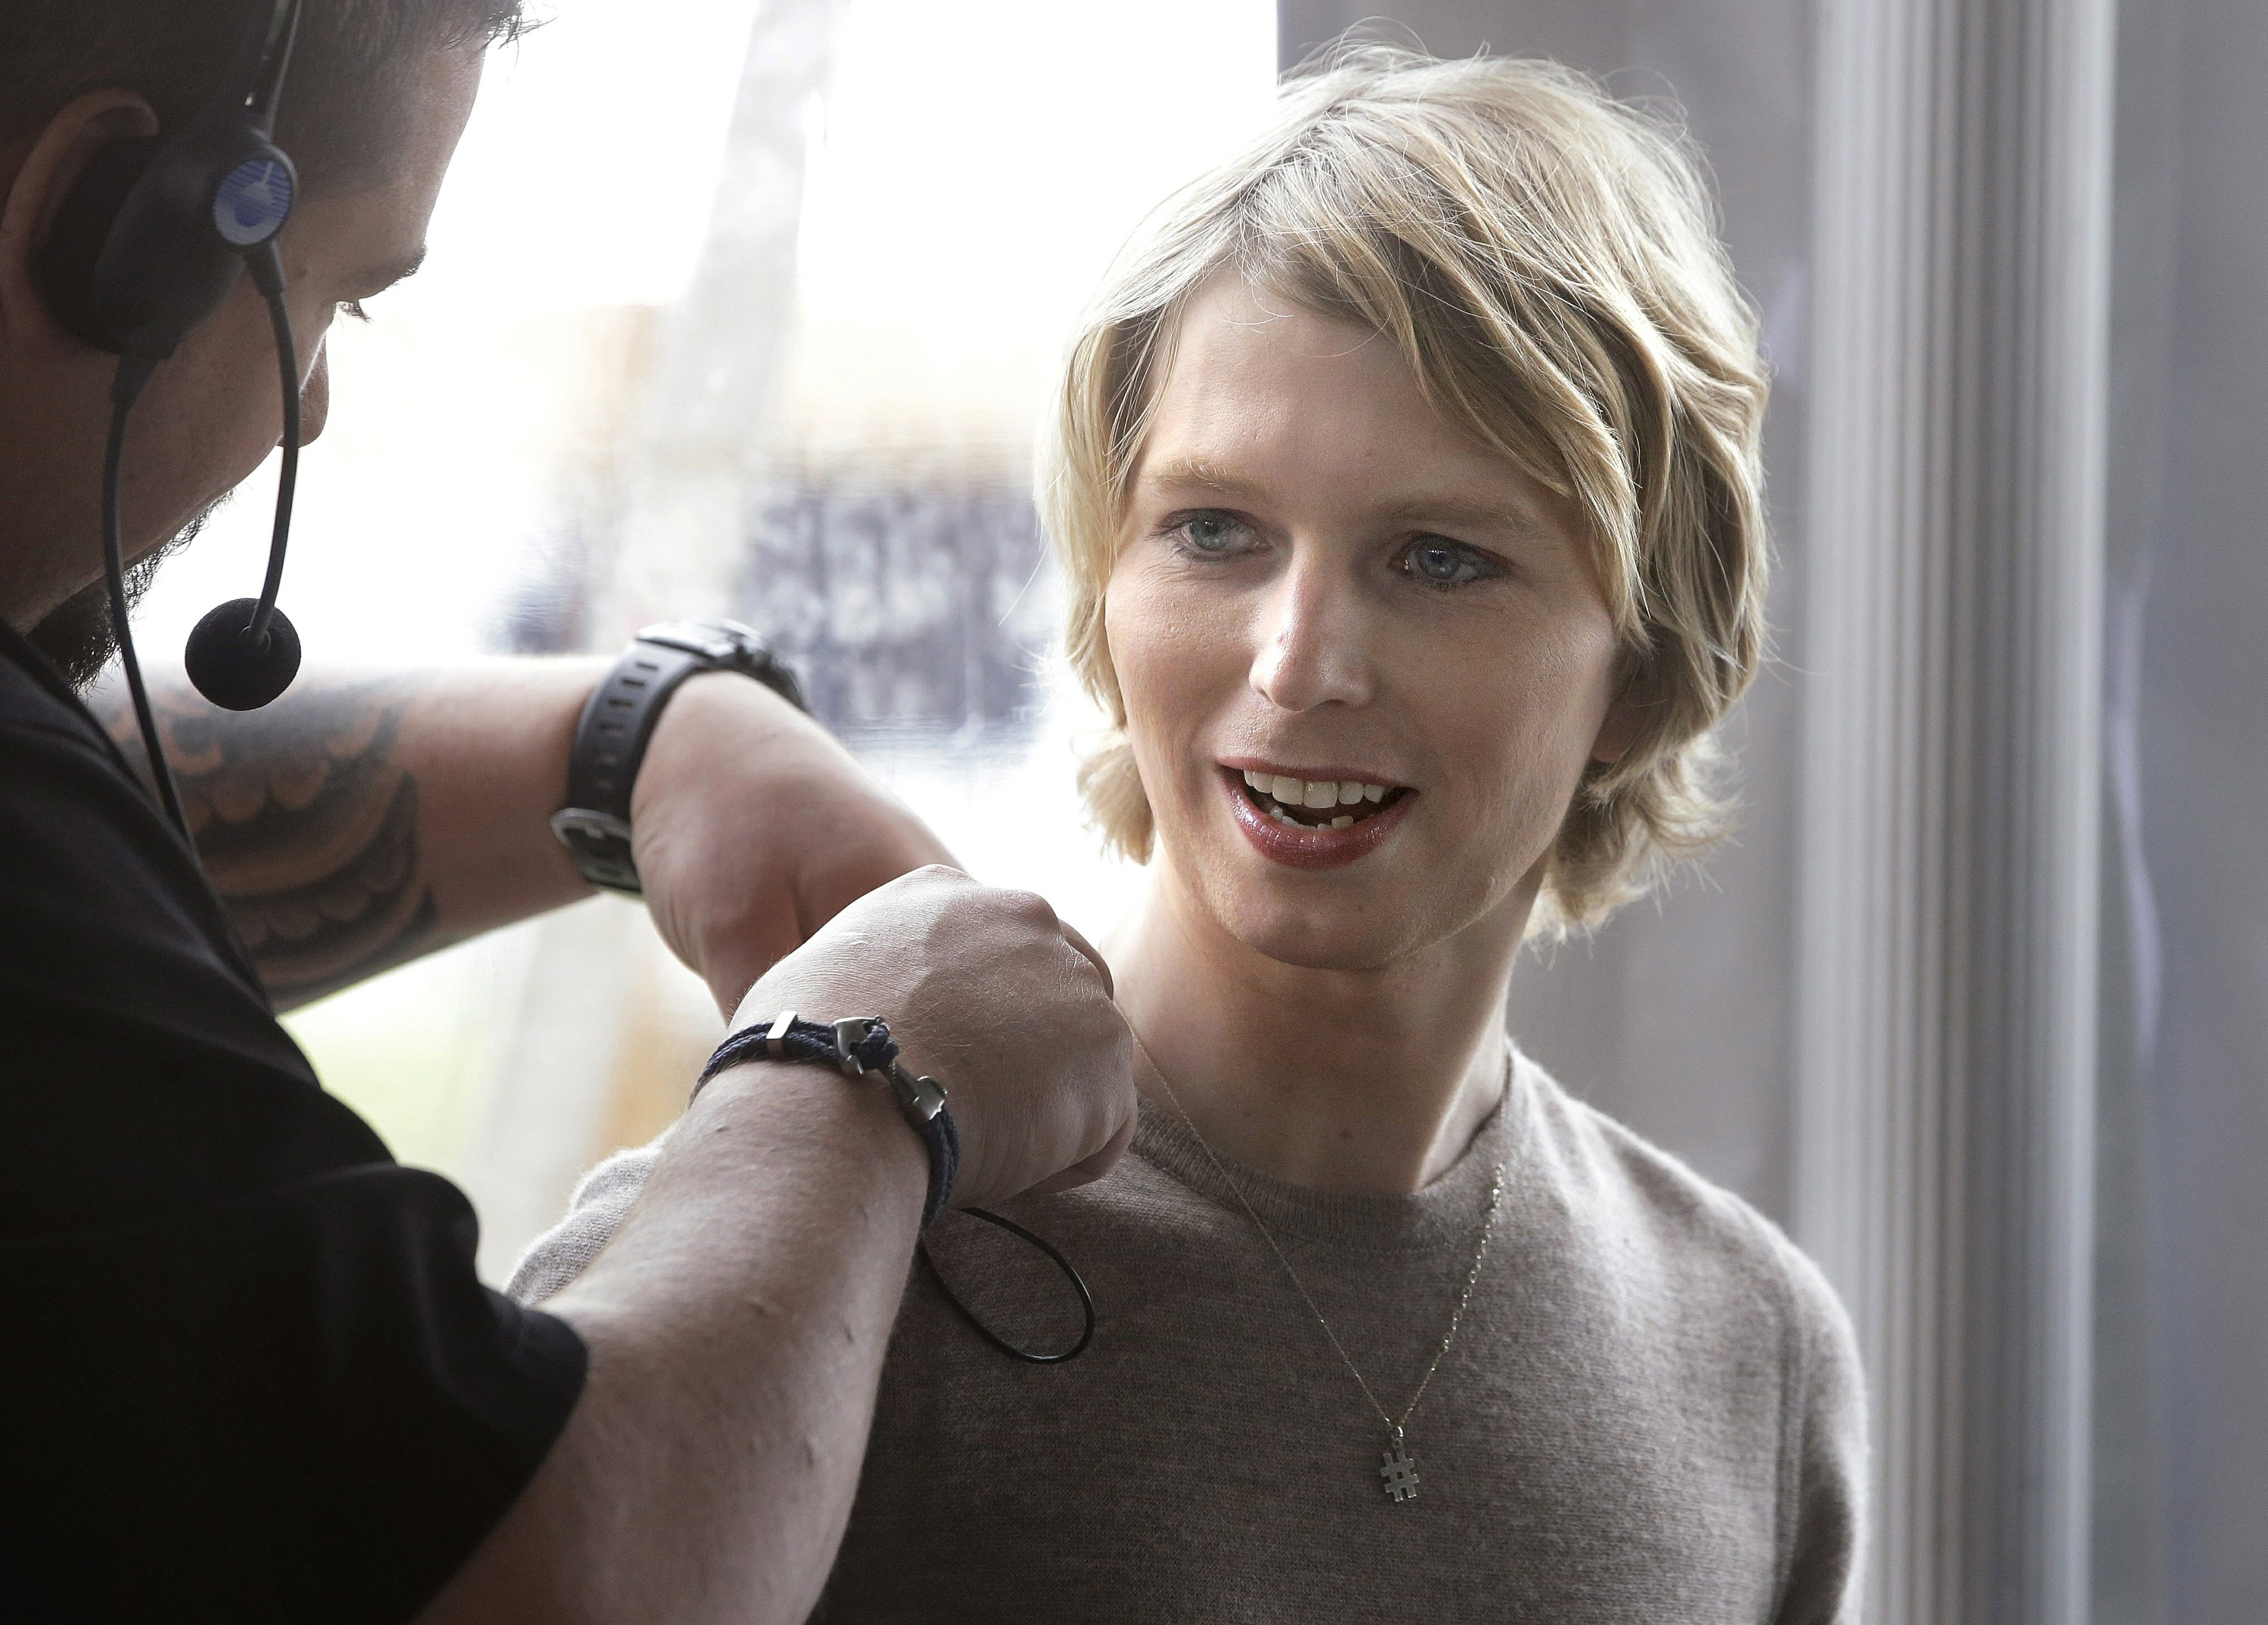 APExclusive: Chelsea Manning says she not a traitor